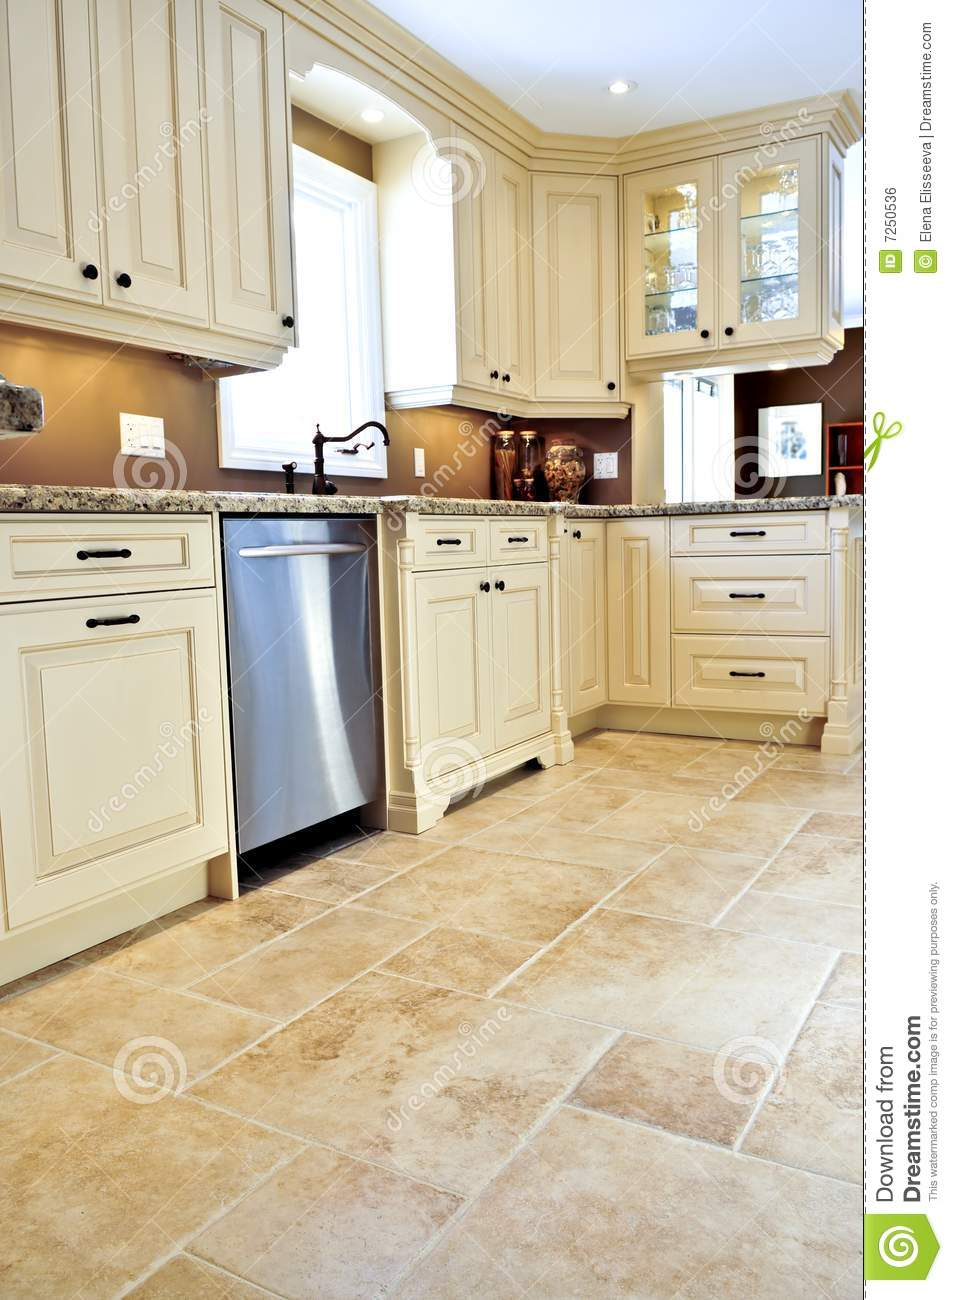 Tile Floor In Modern Kitchen Royalty Free Stock Image Image 7250536